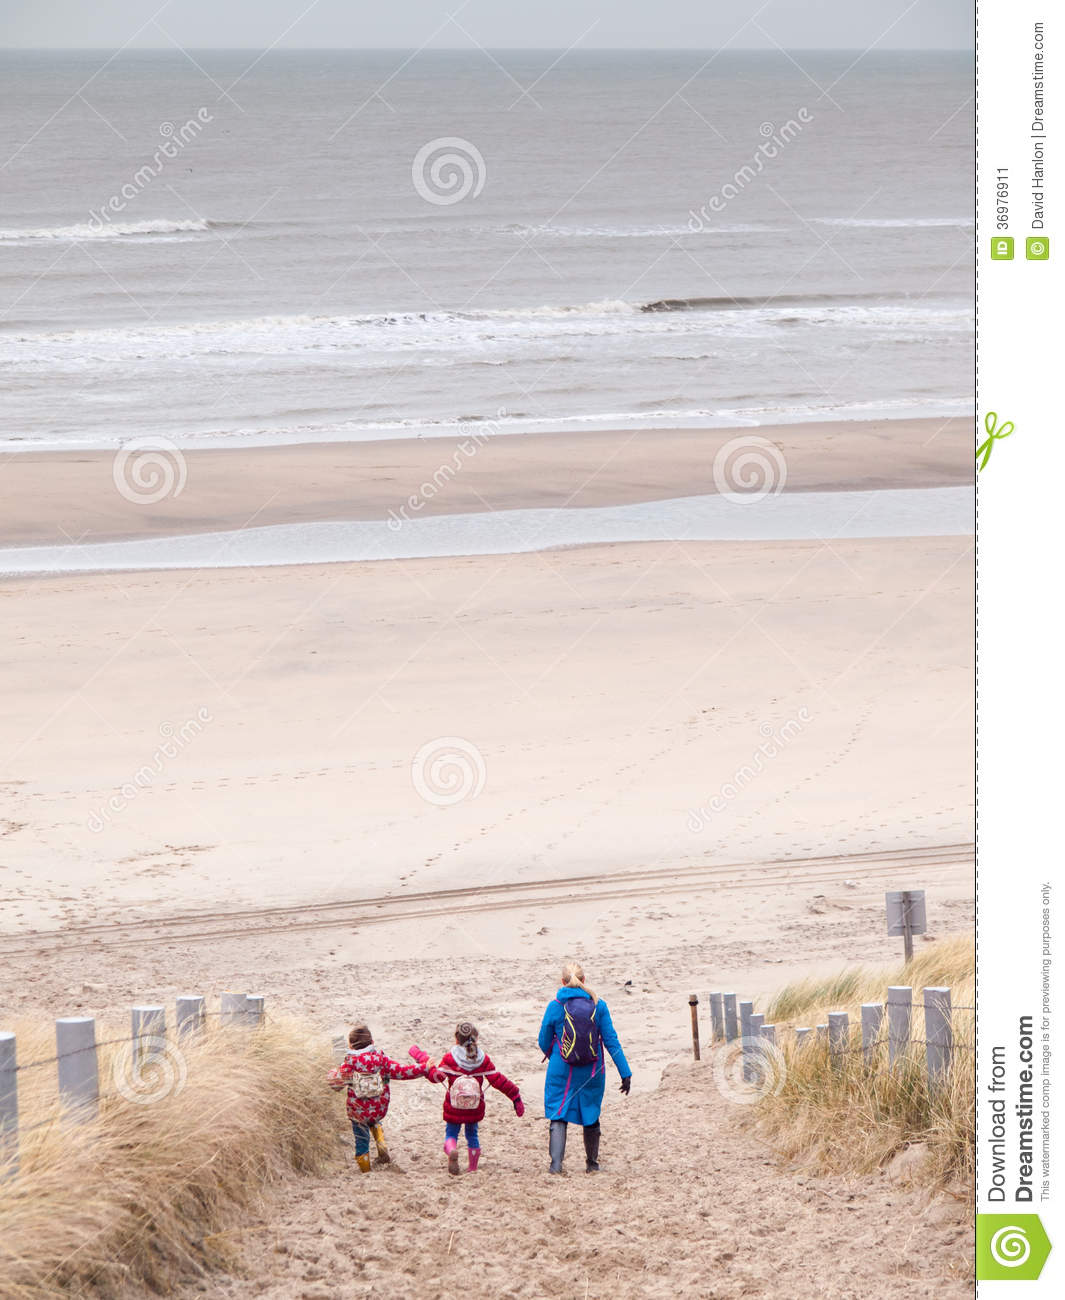 345c7b2c47 Woman with small boy and girl in winter clothing and rubber boots walking  down to a winter beach along a dune path